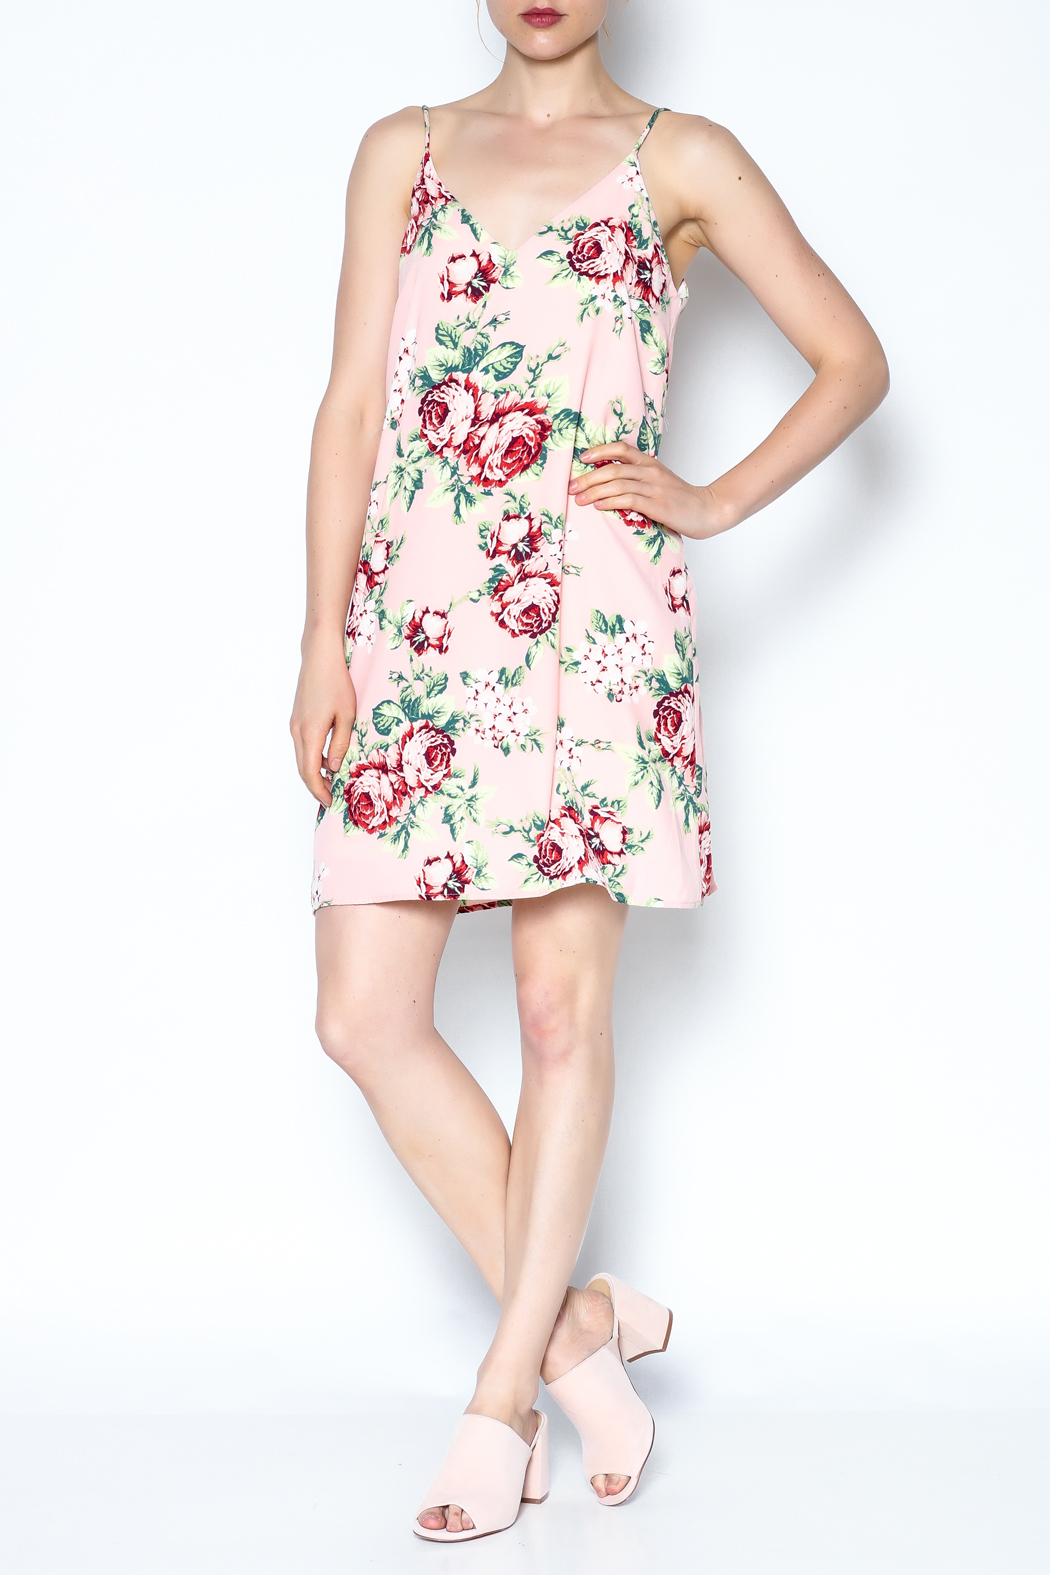 y&i clothing boutique Floral Cami Dress - Side Cropped Image